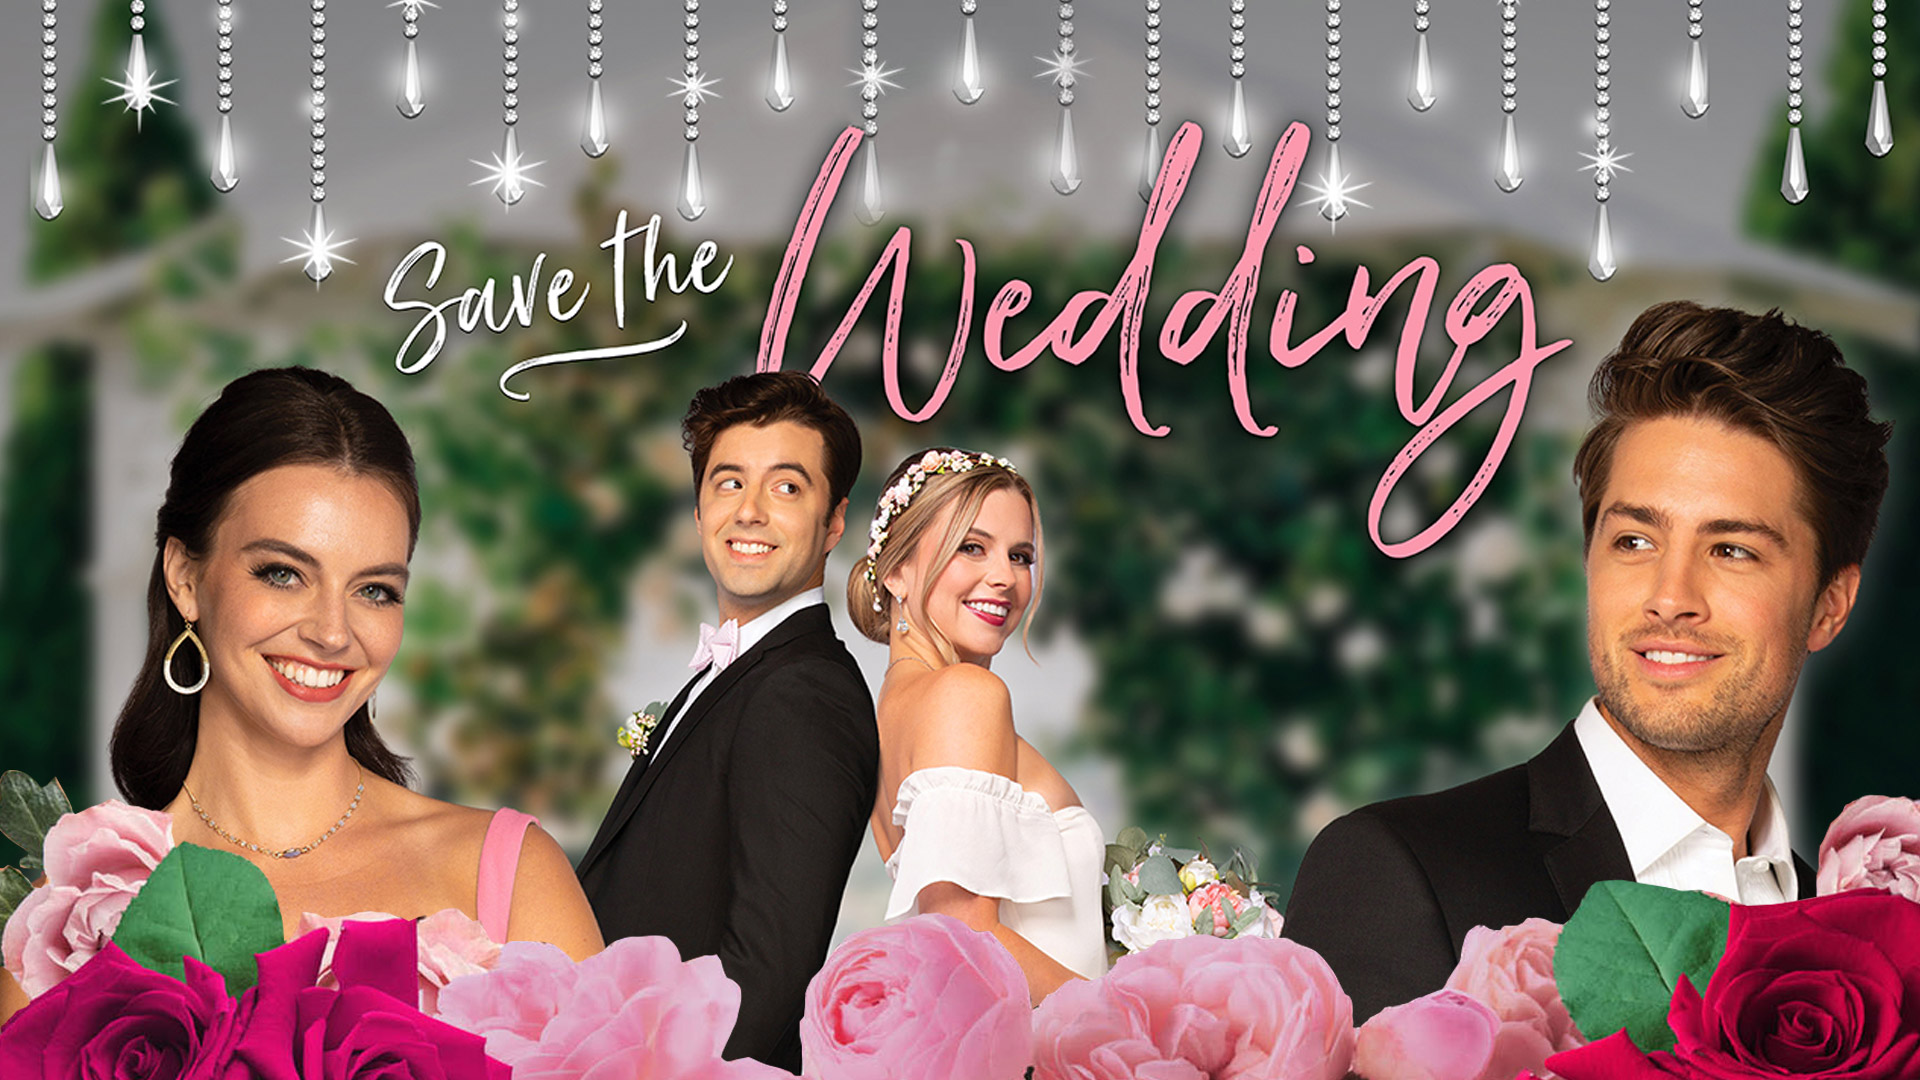 Save the Wedding